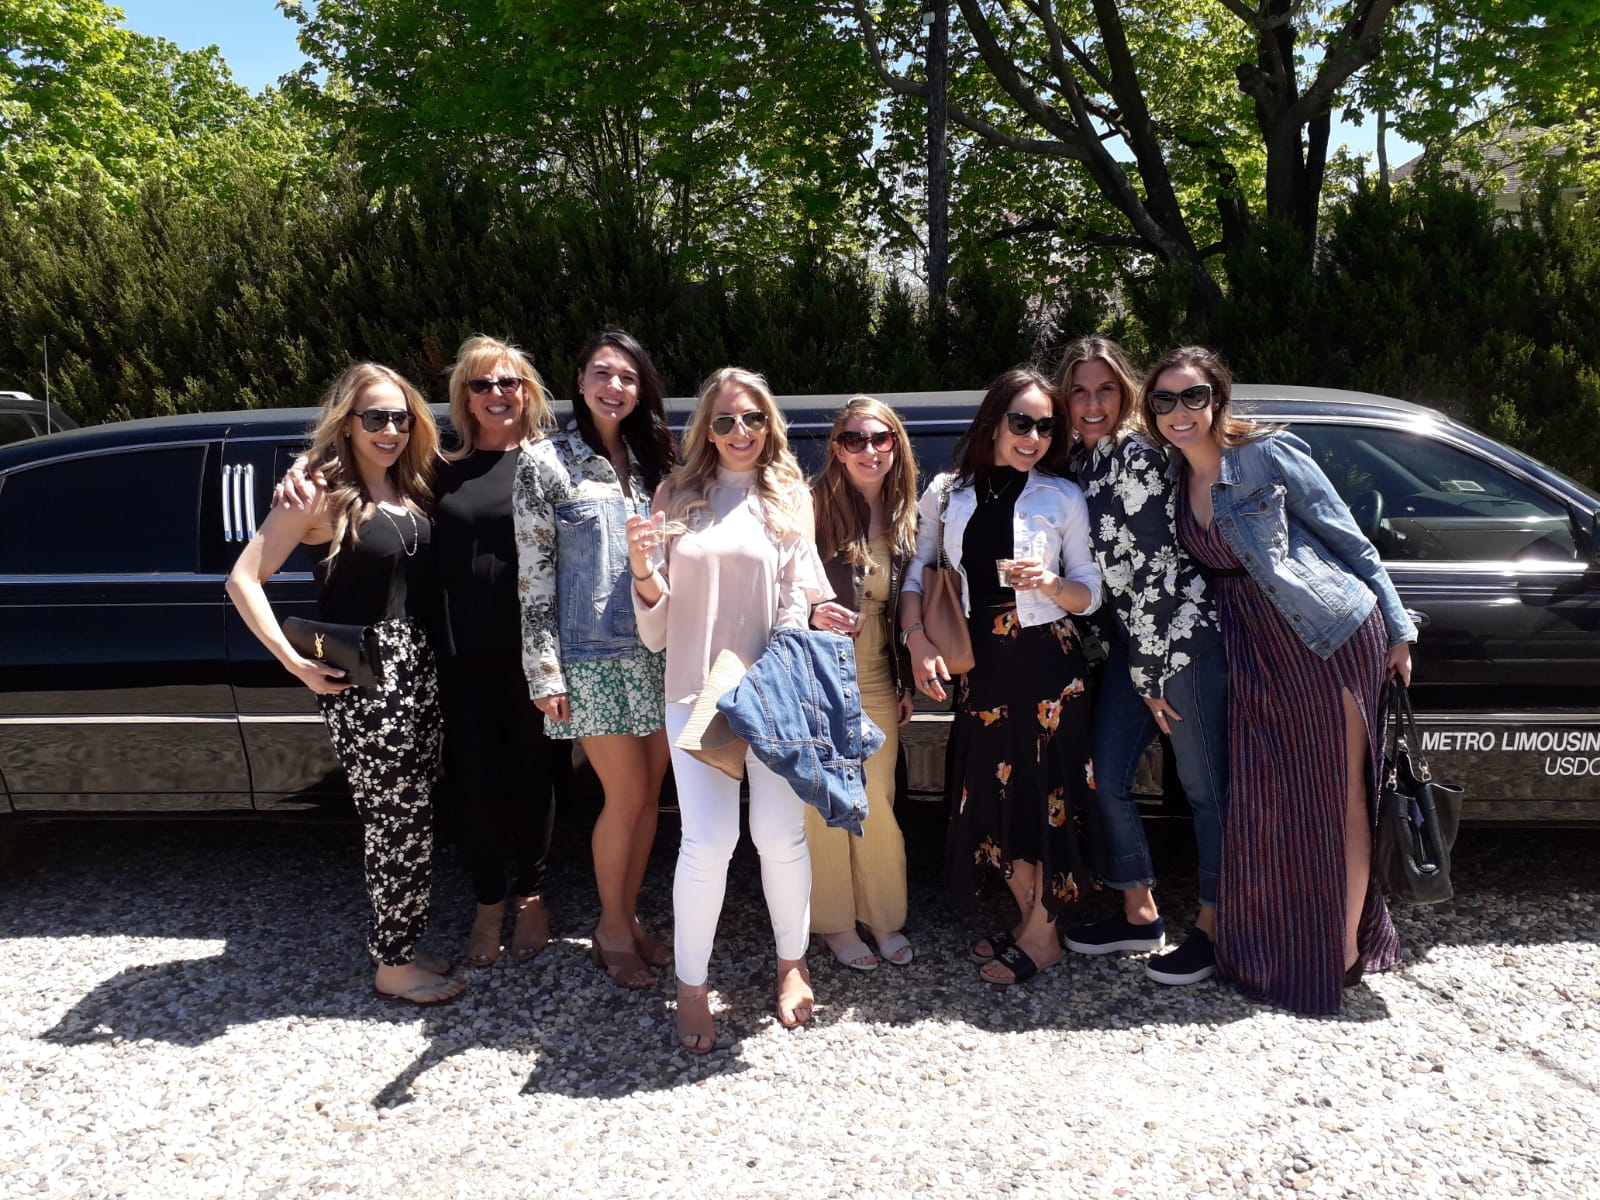 Bachelorette Party Wine Tour with Limo Service included by LI Vineyard Tours®